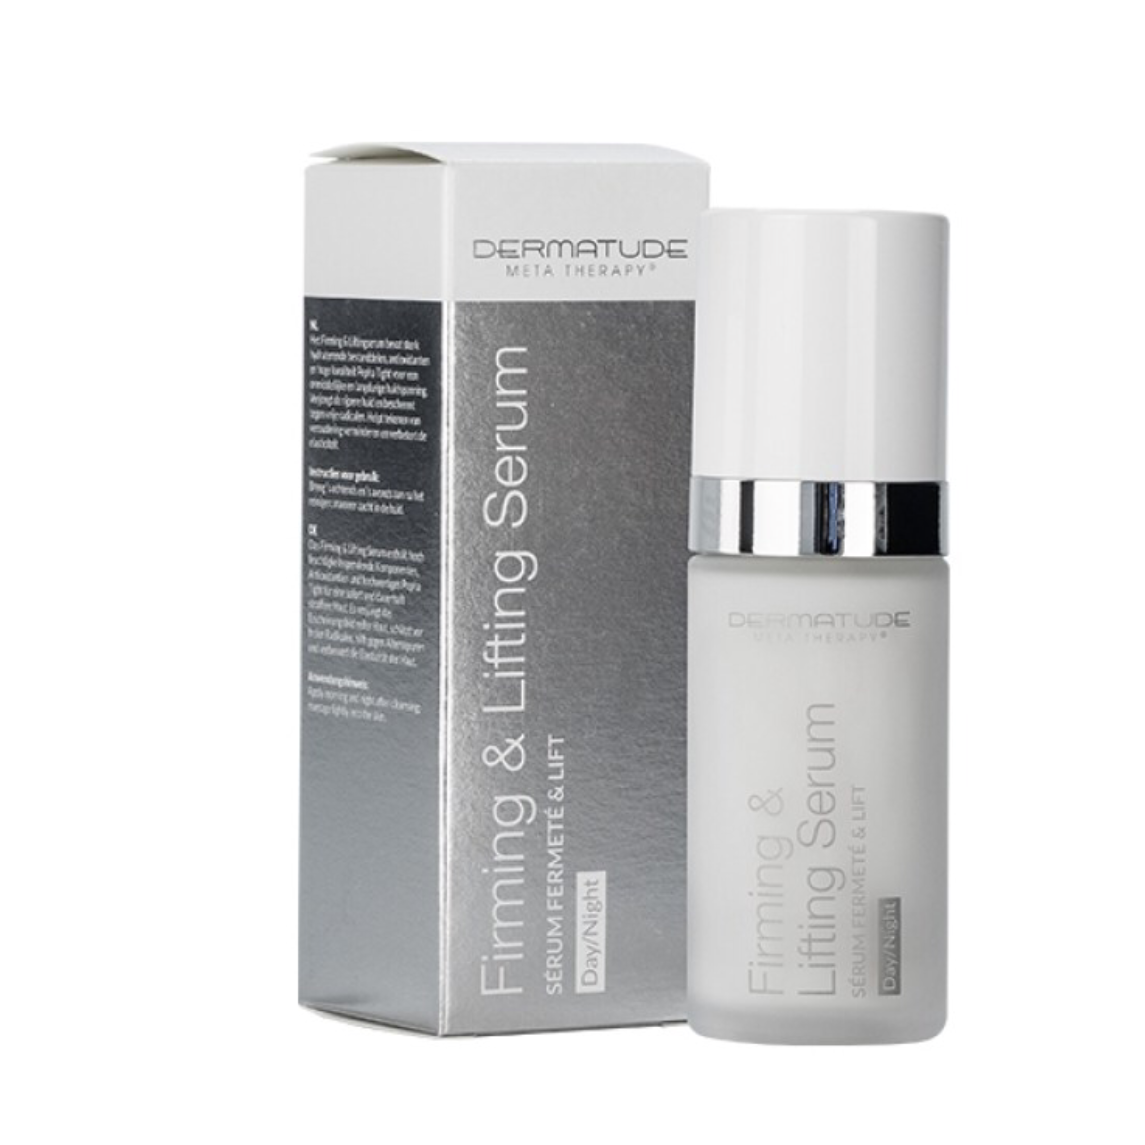 Firming & Lifting Serum